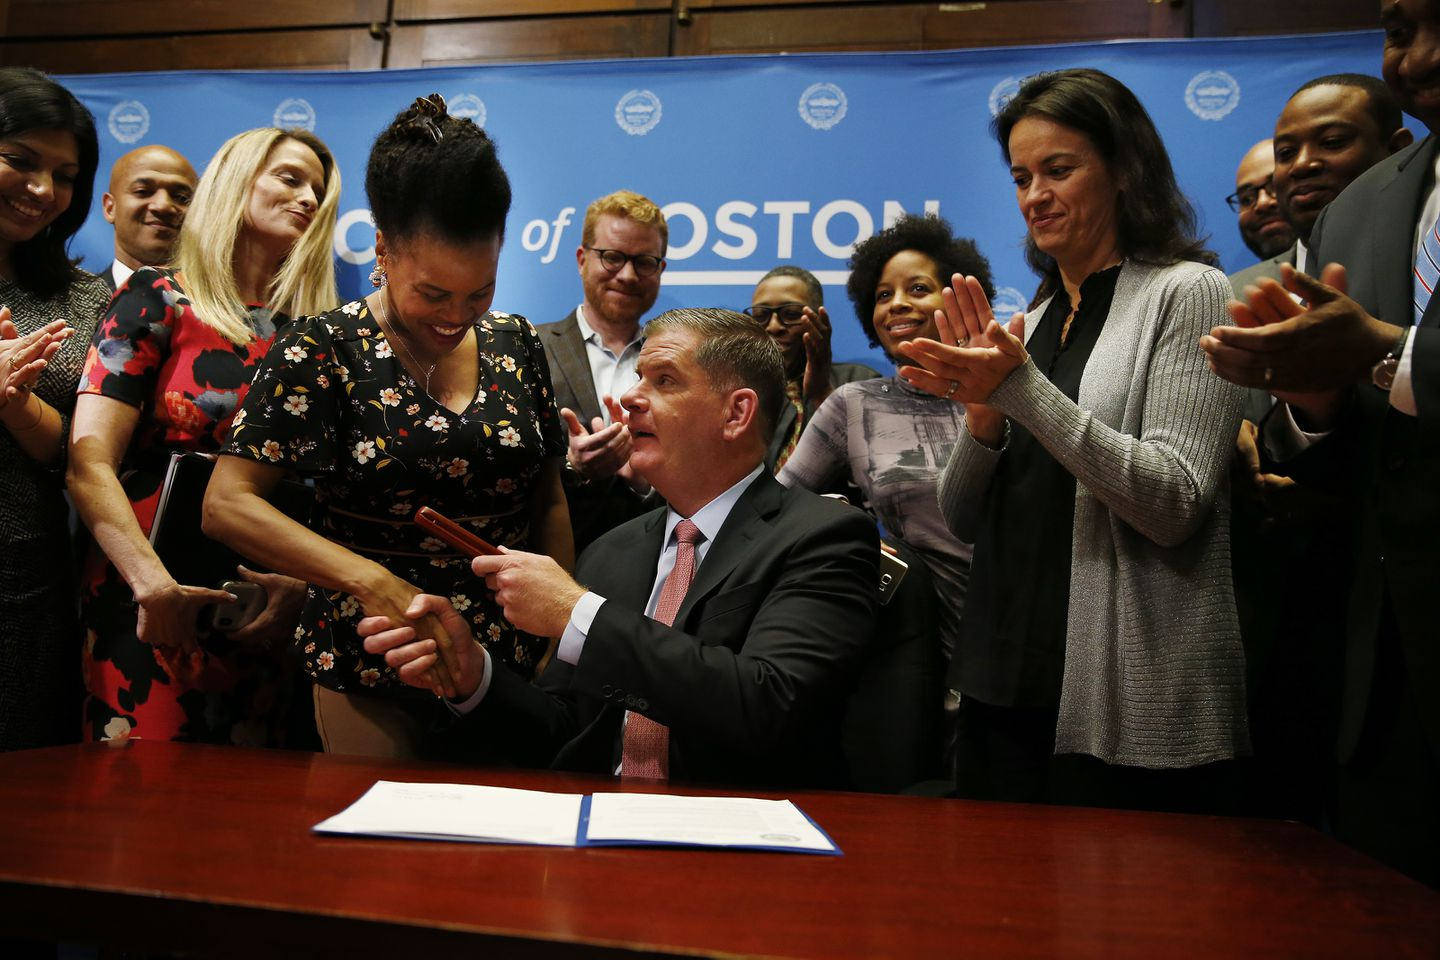 Walsh signs marijuana ordinance at City Hall ceremony - The Boston ...